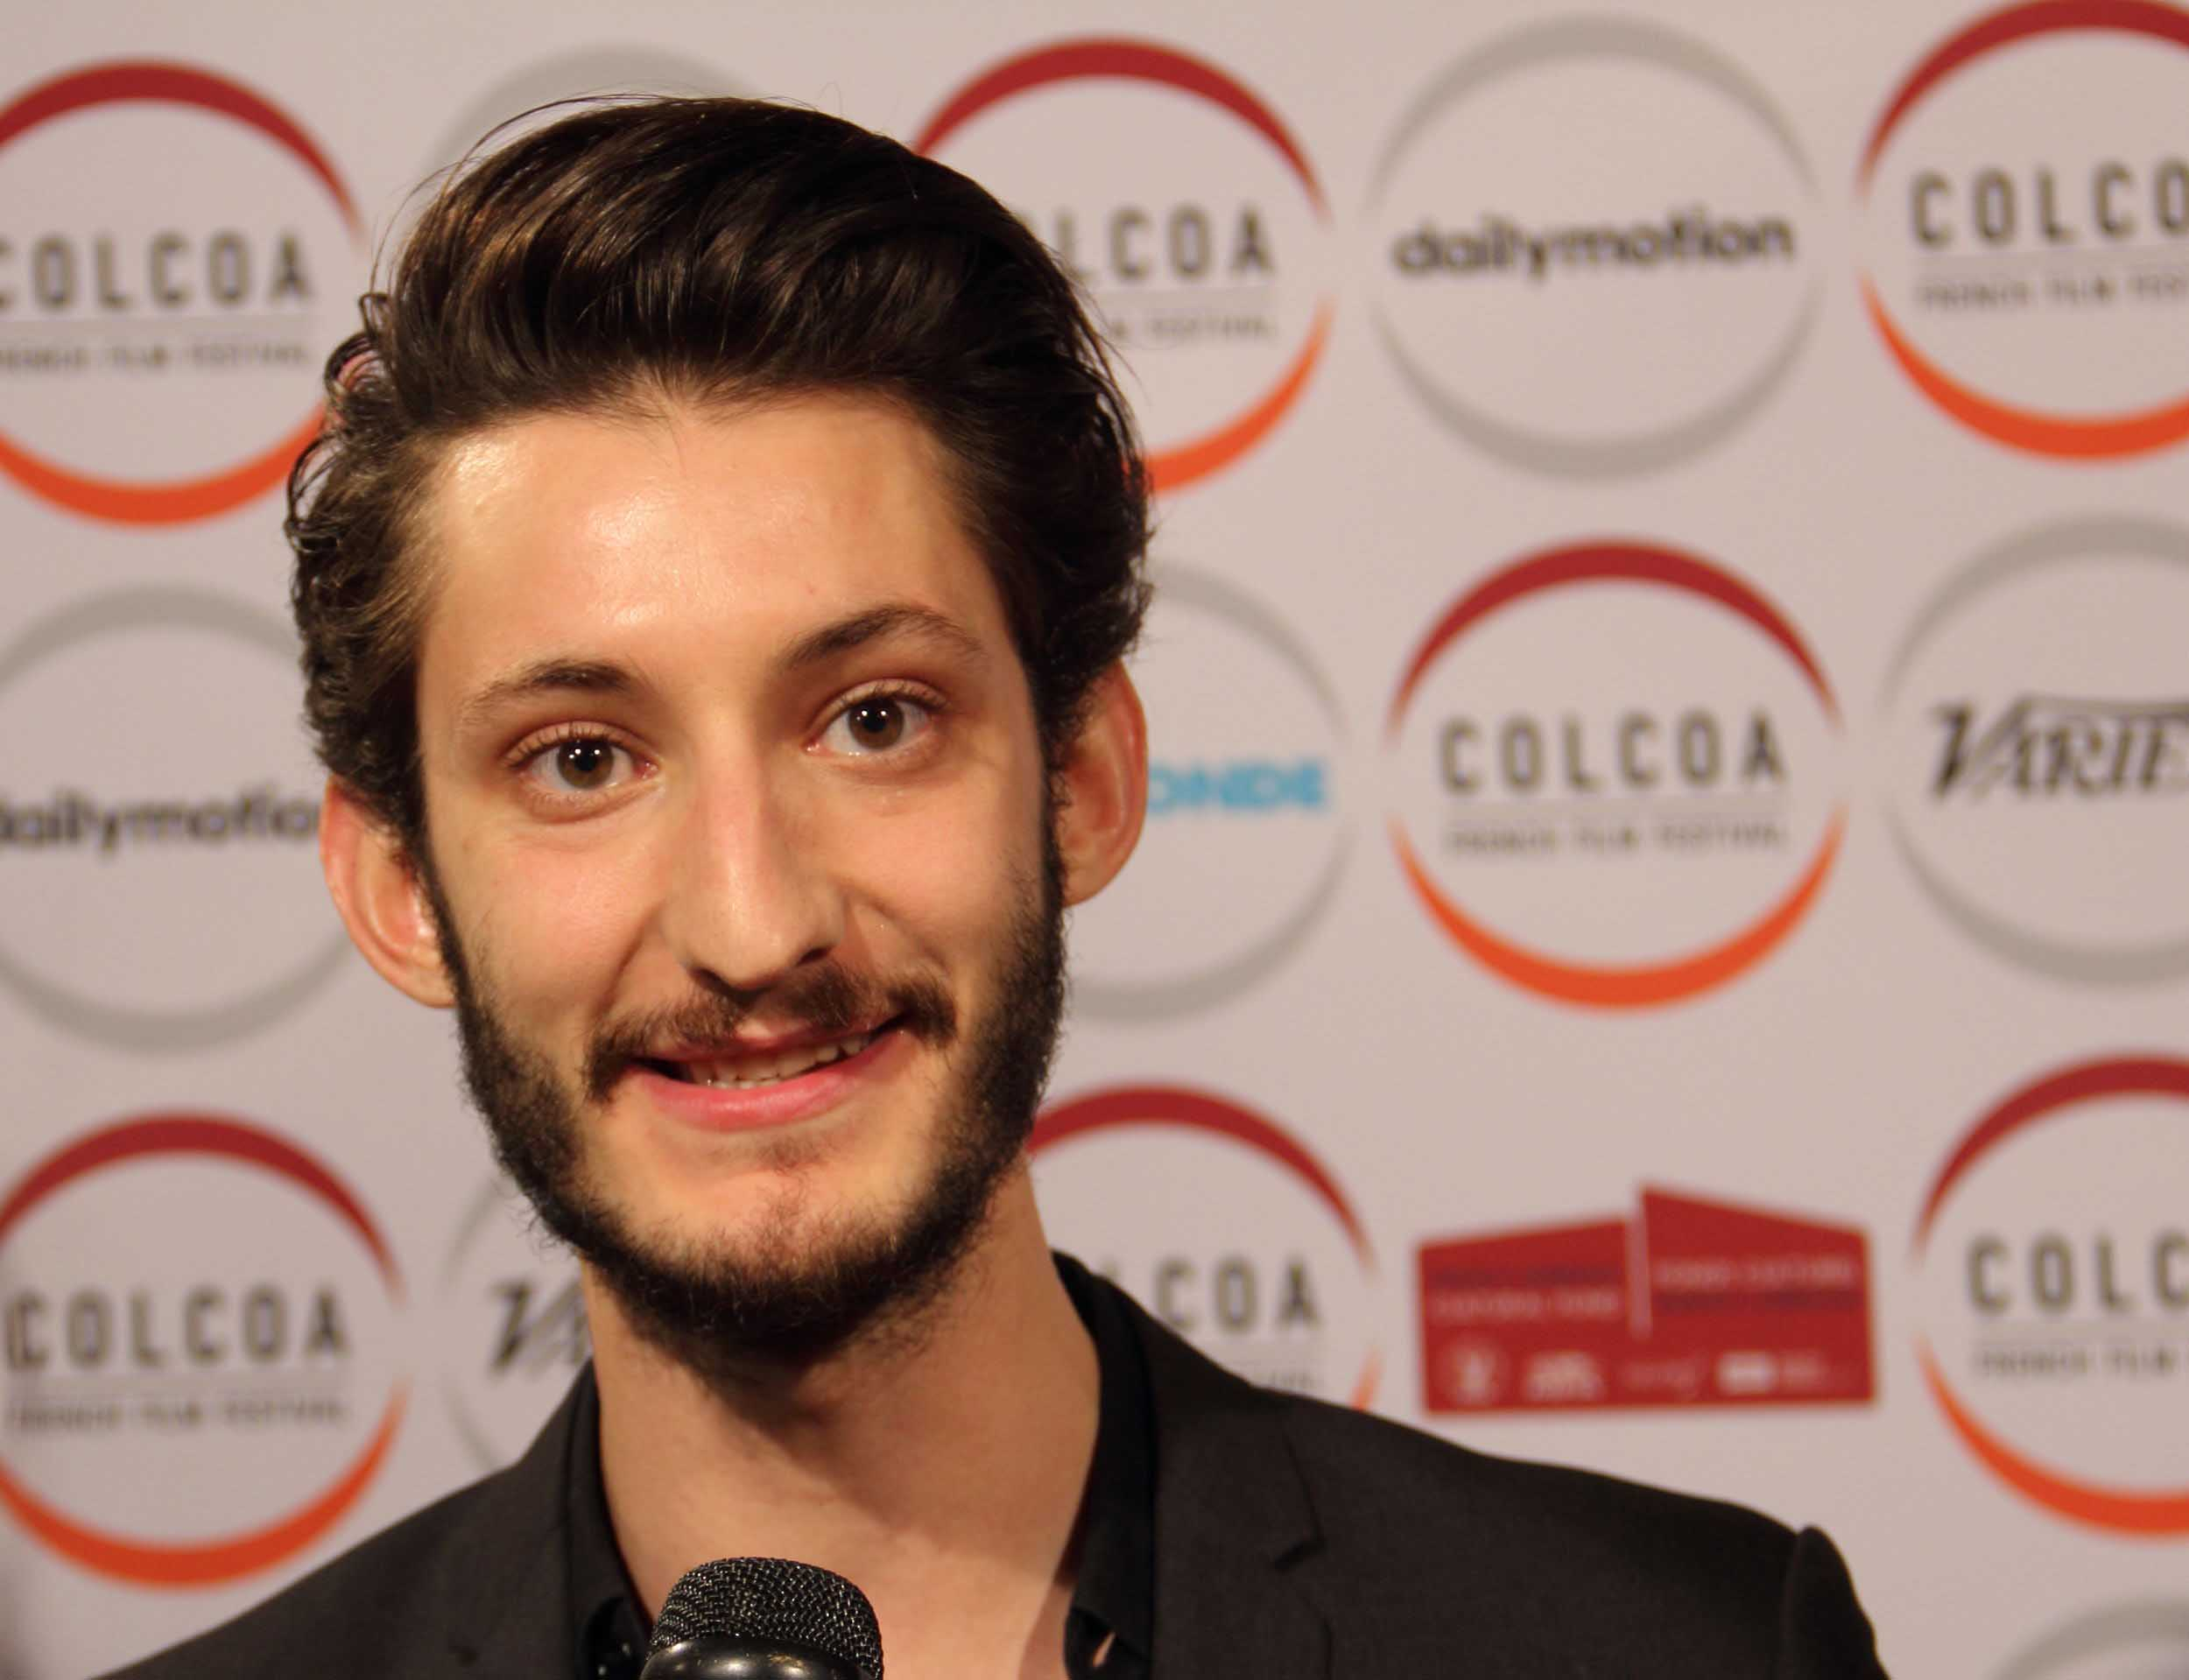 A Perfect Man Opens The 19th Colcoa French Film Festival Latf Usa